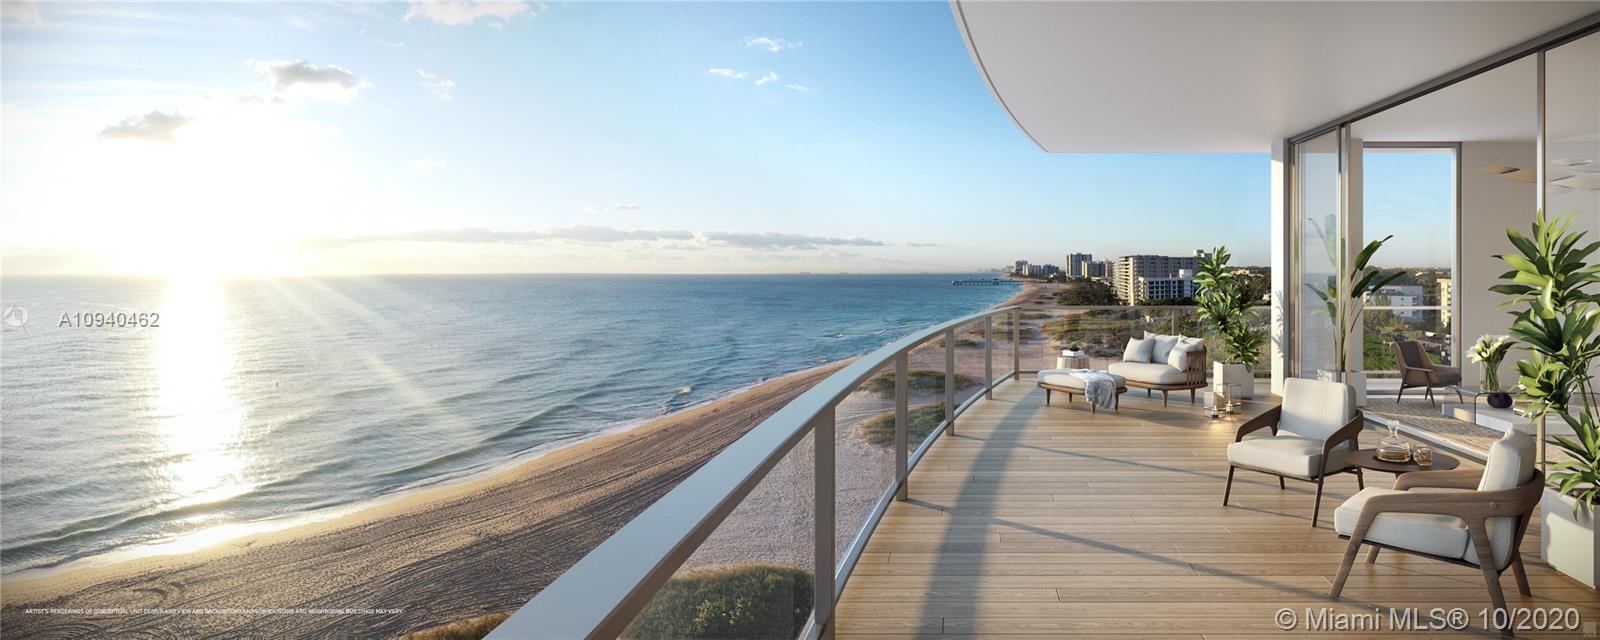 Spectacular 3 Bedroom 3.5 Bath + Den at Pompano's HOTTEST new pre-construction property, SOLEMAR! This residence has a flow-through contemporary floor plan featuring floor-to-ceiling windows with breathtaking views of the city, the Atlantic Ocean and the Intracoastal Waterway. Private elevator access and entry foyers in all units. From unforgettable beach views to a stunning pool deck to an enormous 13,000 square-foot terraced green space, SOLEMAR exceeds all of your expectations.